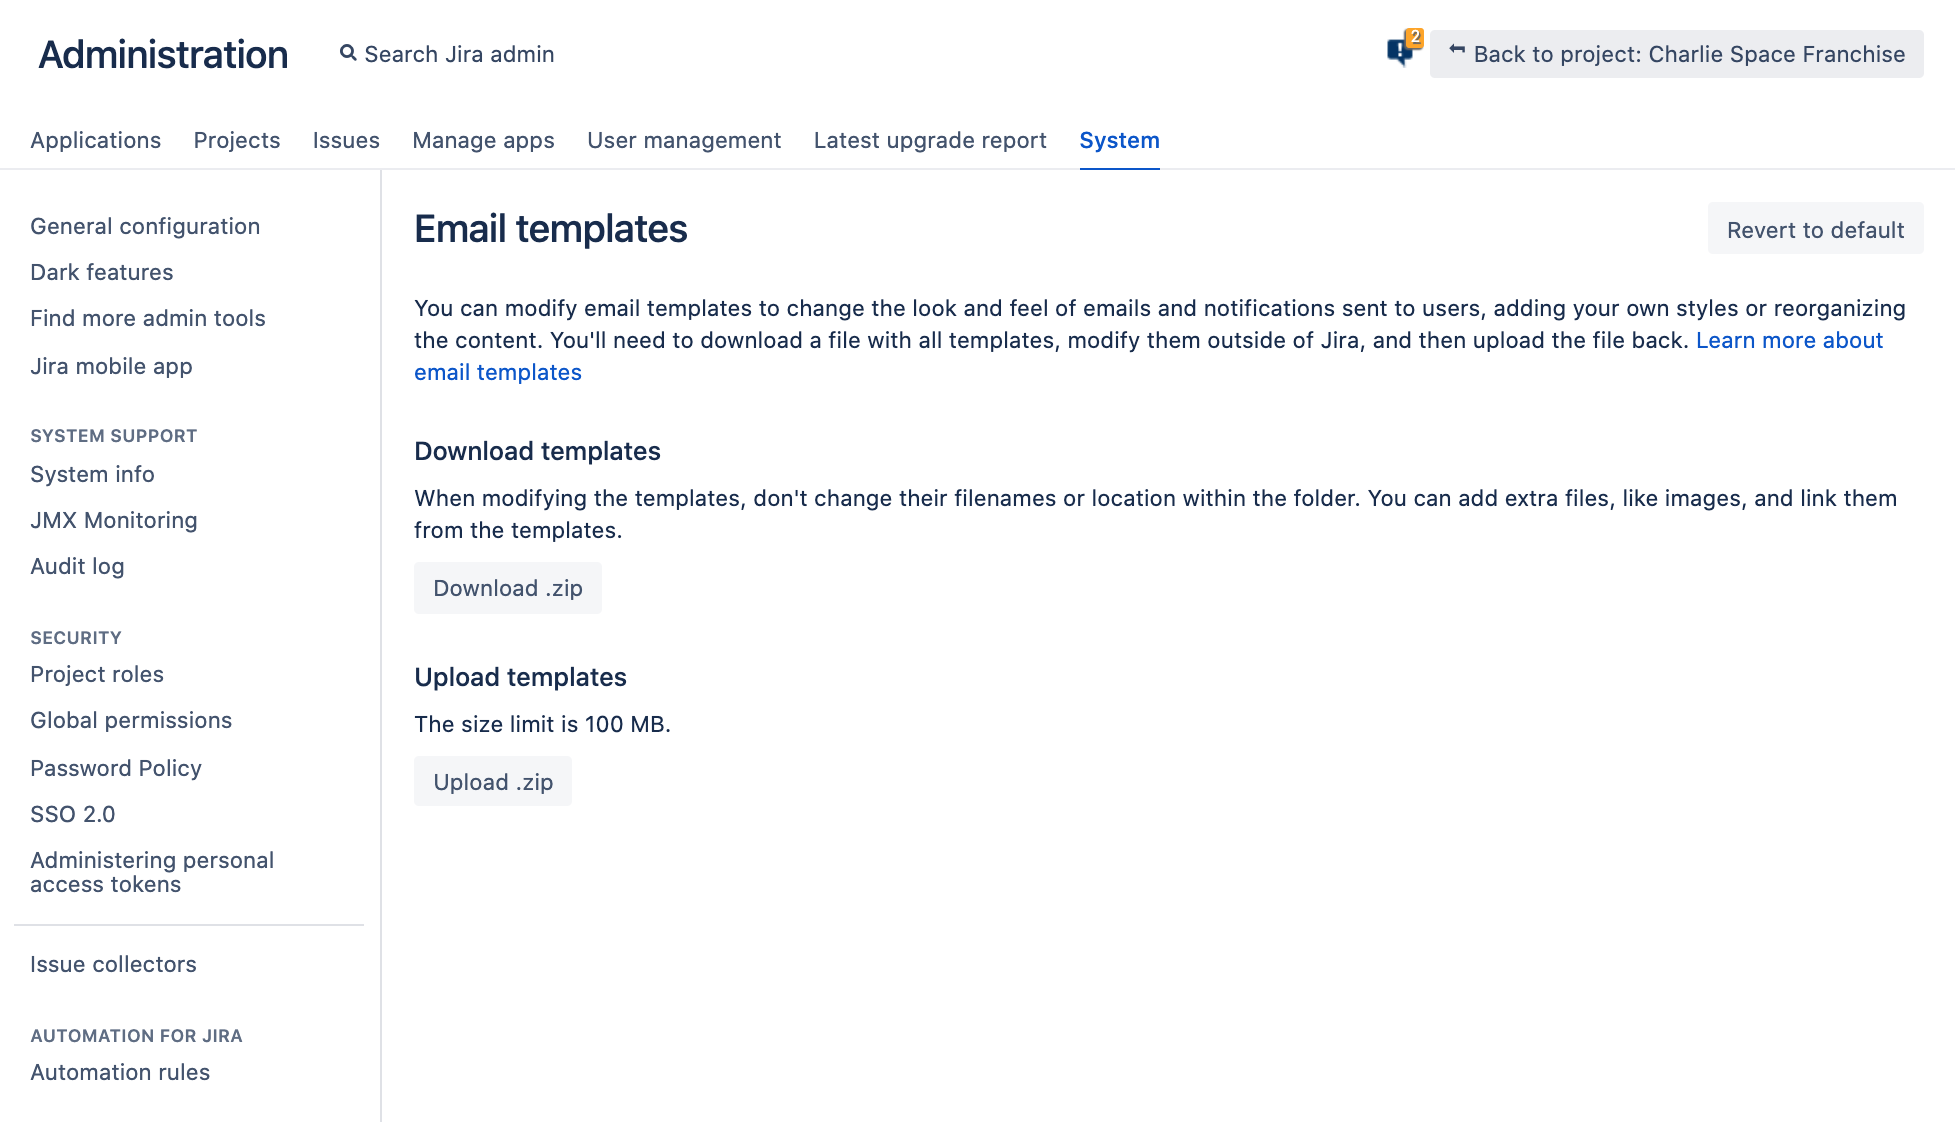 Jira service management 4.14.x release notes 2